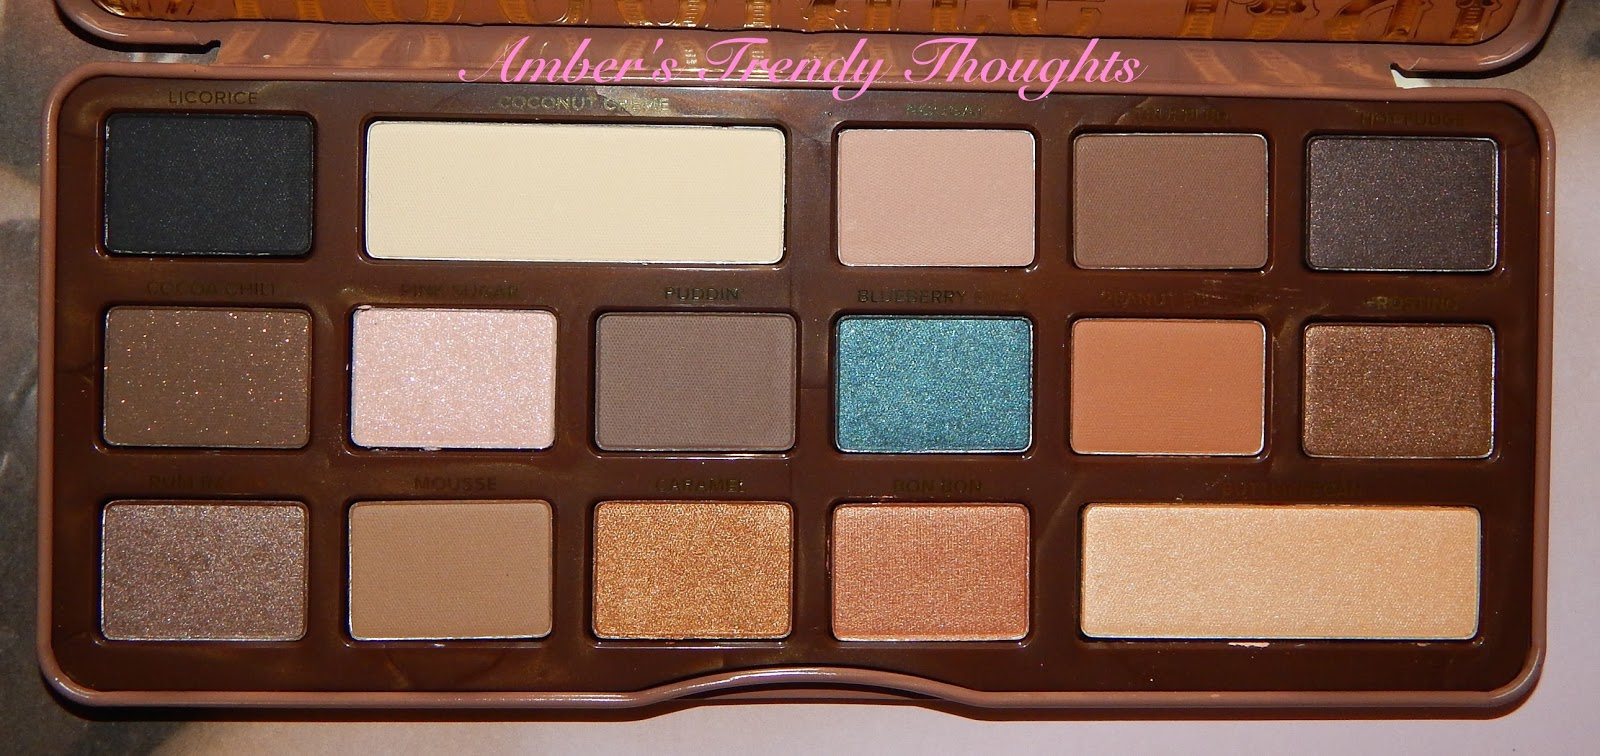 Too Faced Chocolate Bar Palettes Worth The Hype? | Amber\'s Trendy ...